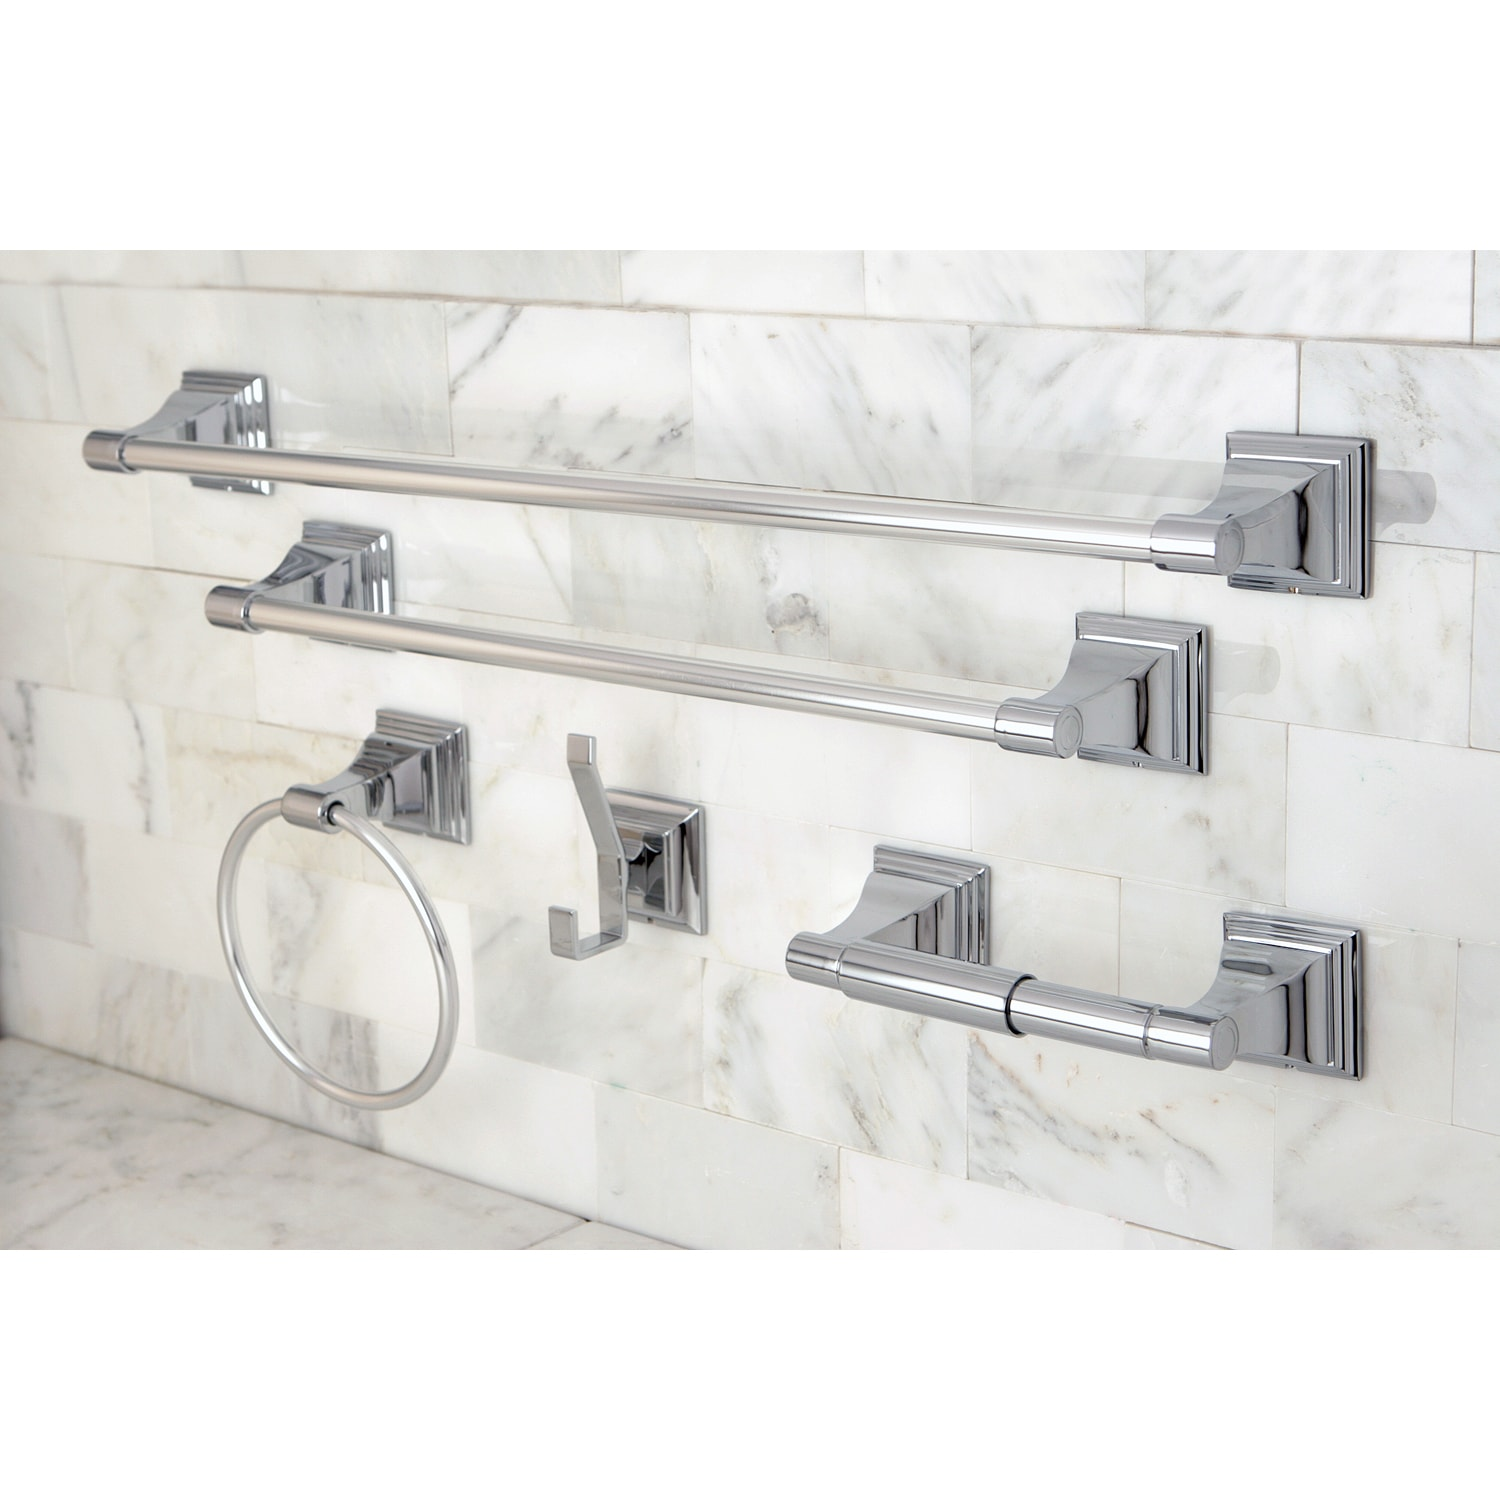 Chrome 5 Piece Bathroom Accessory Set 14054420